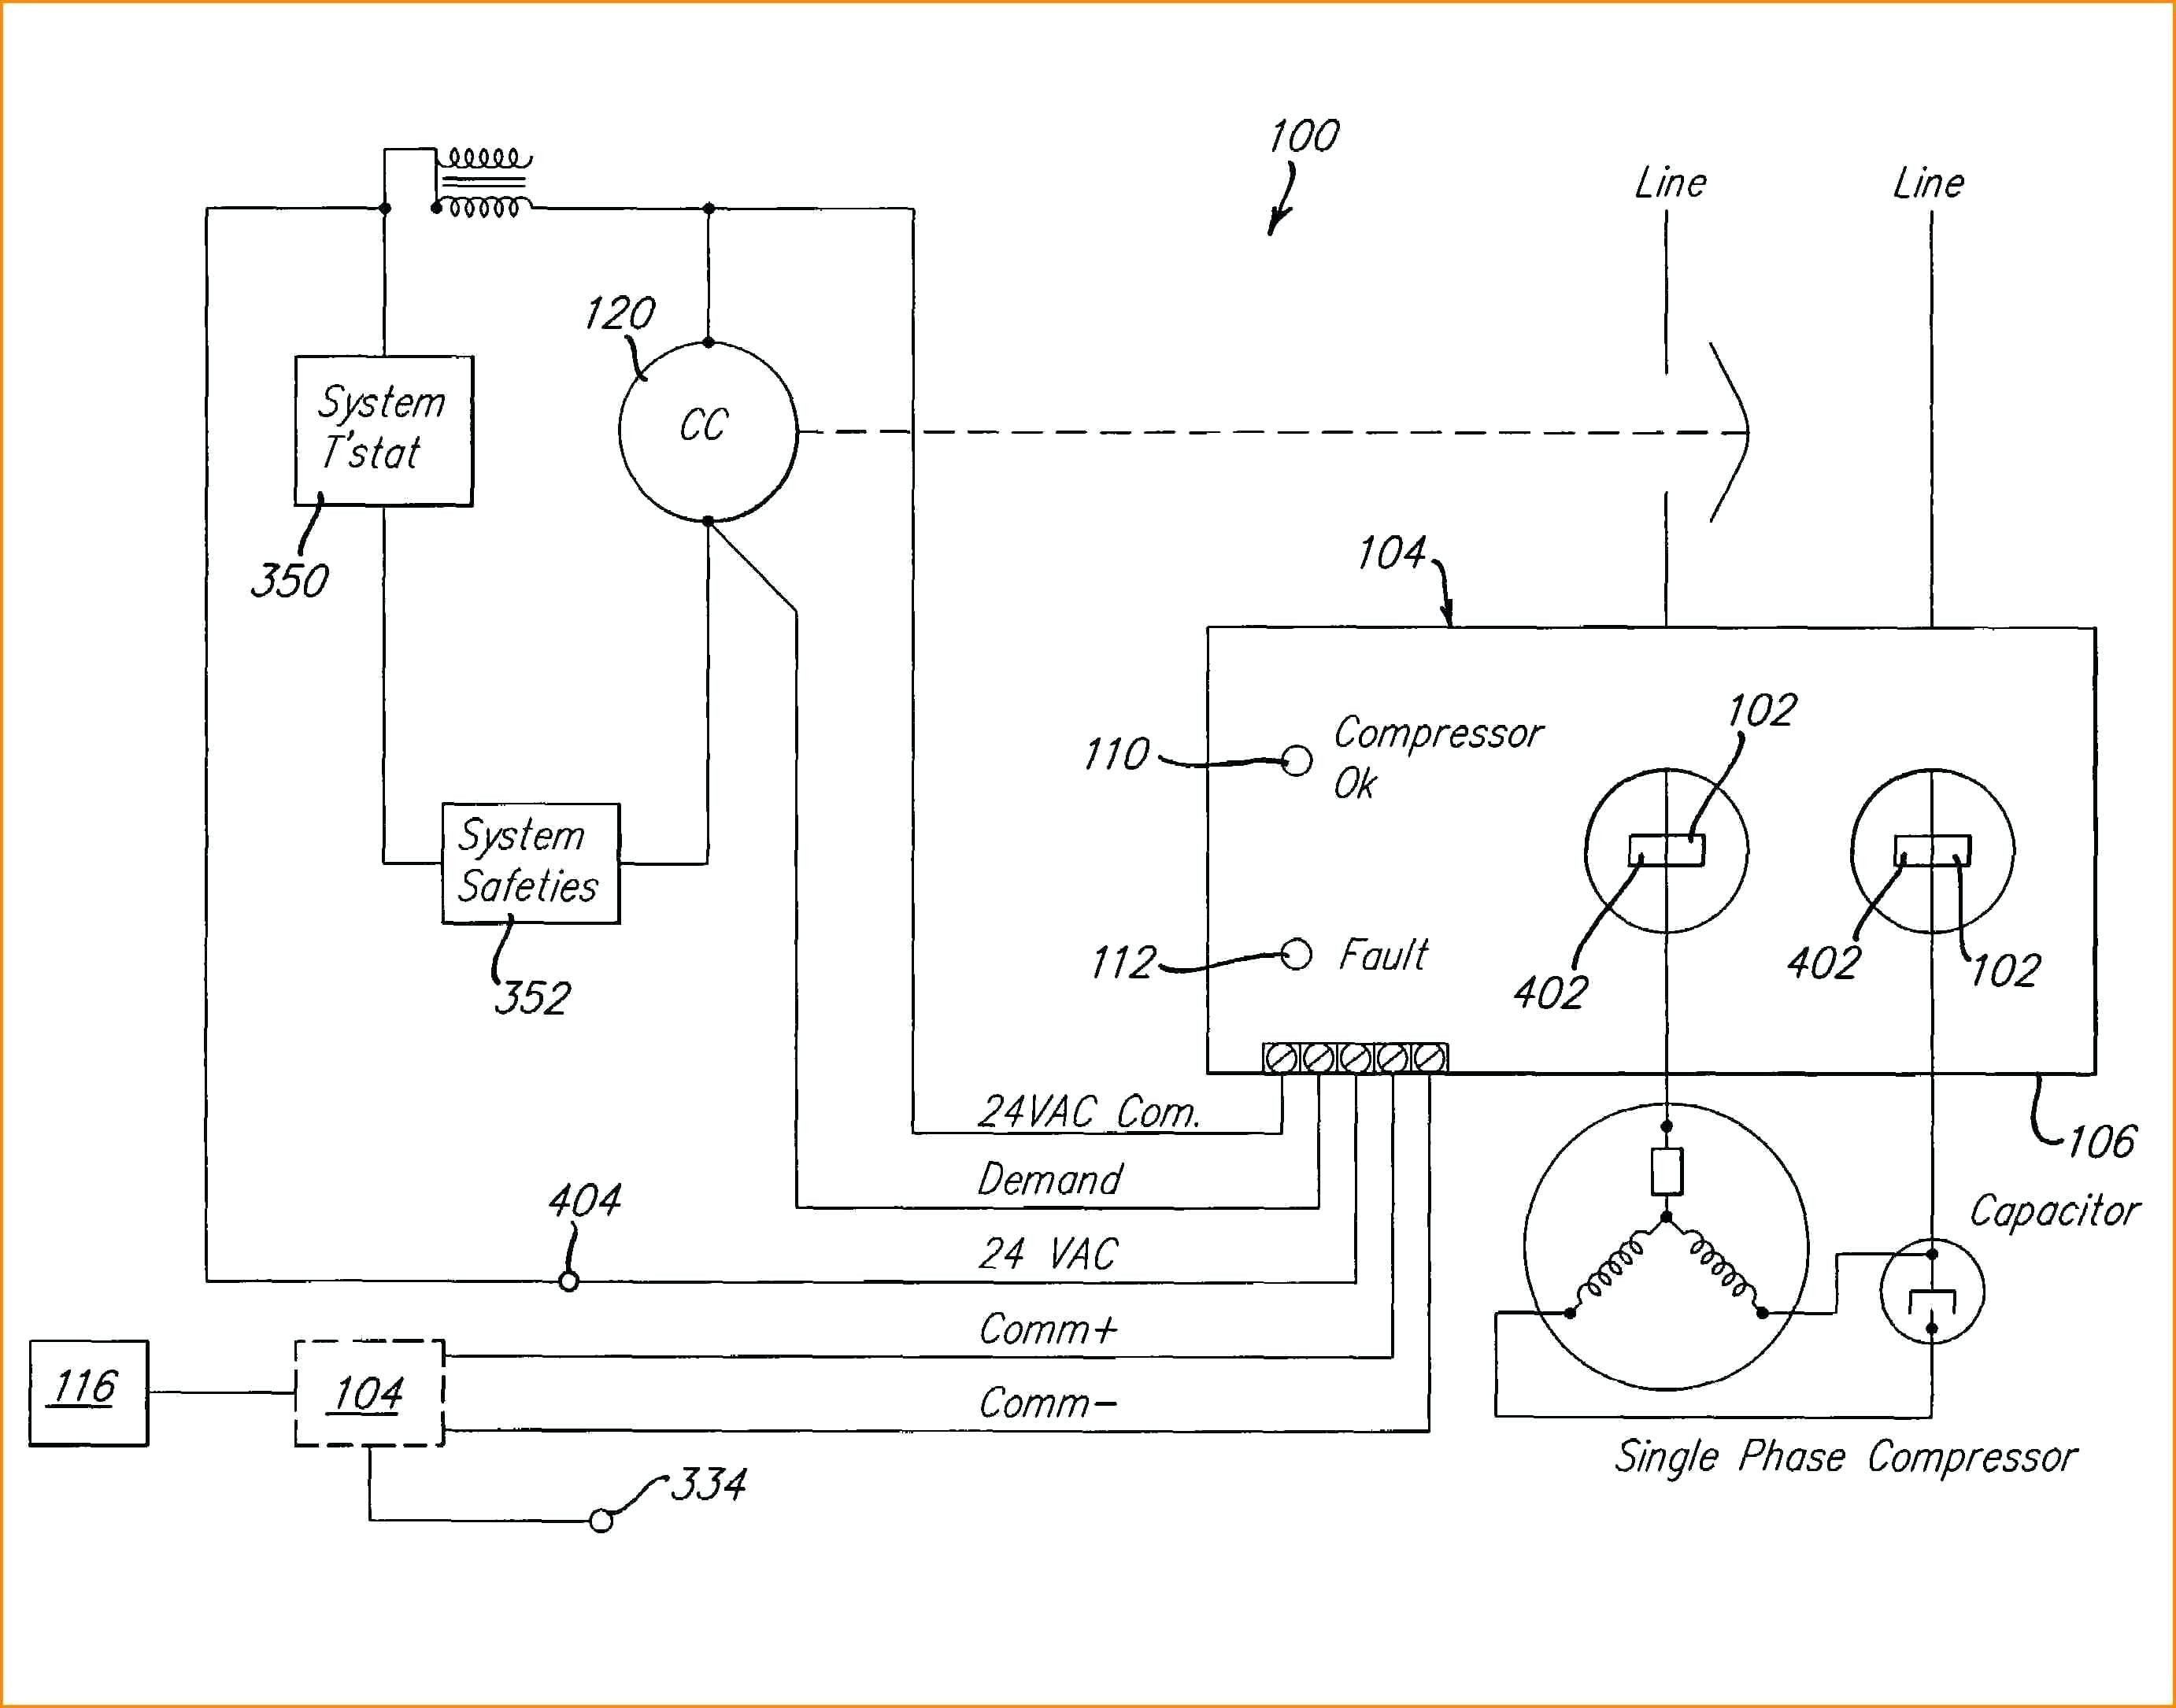 Wiring Diagram For Ac Compressor - custom project wiring diagram